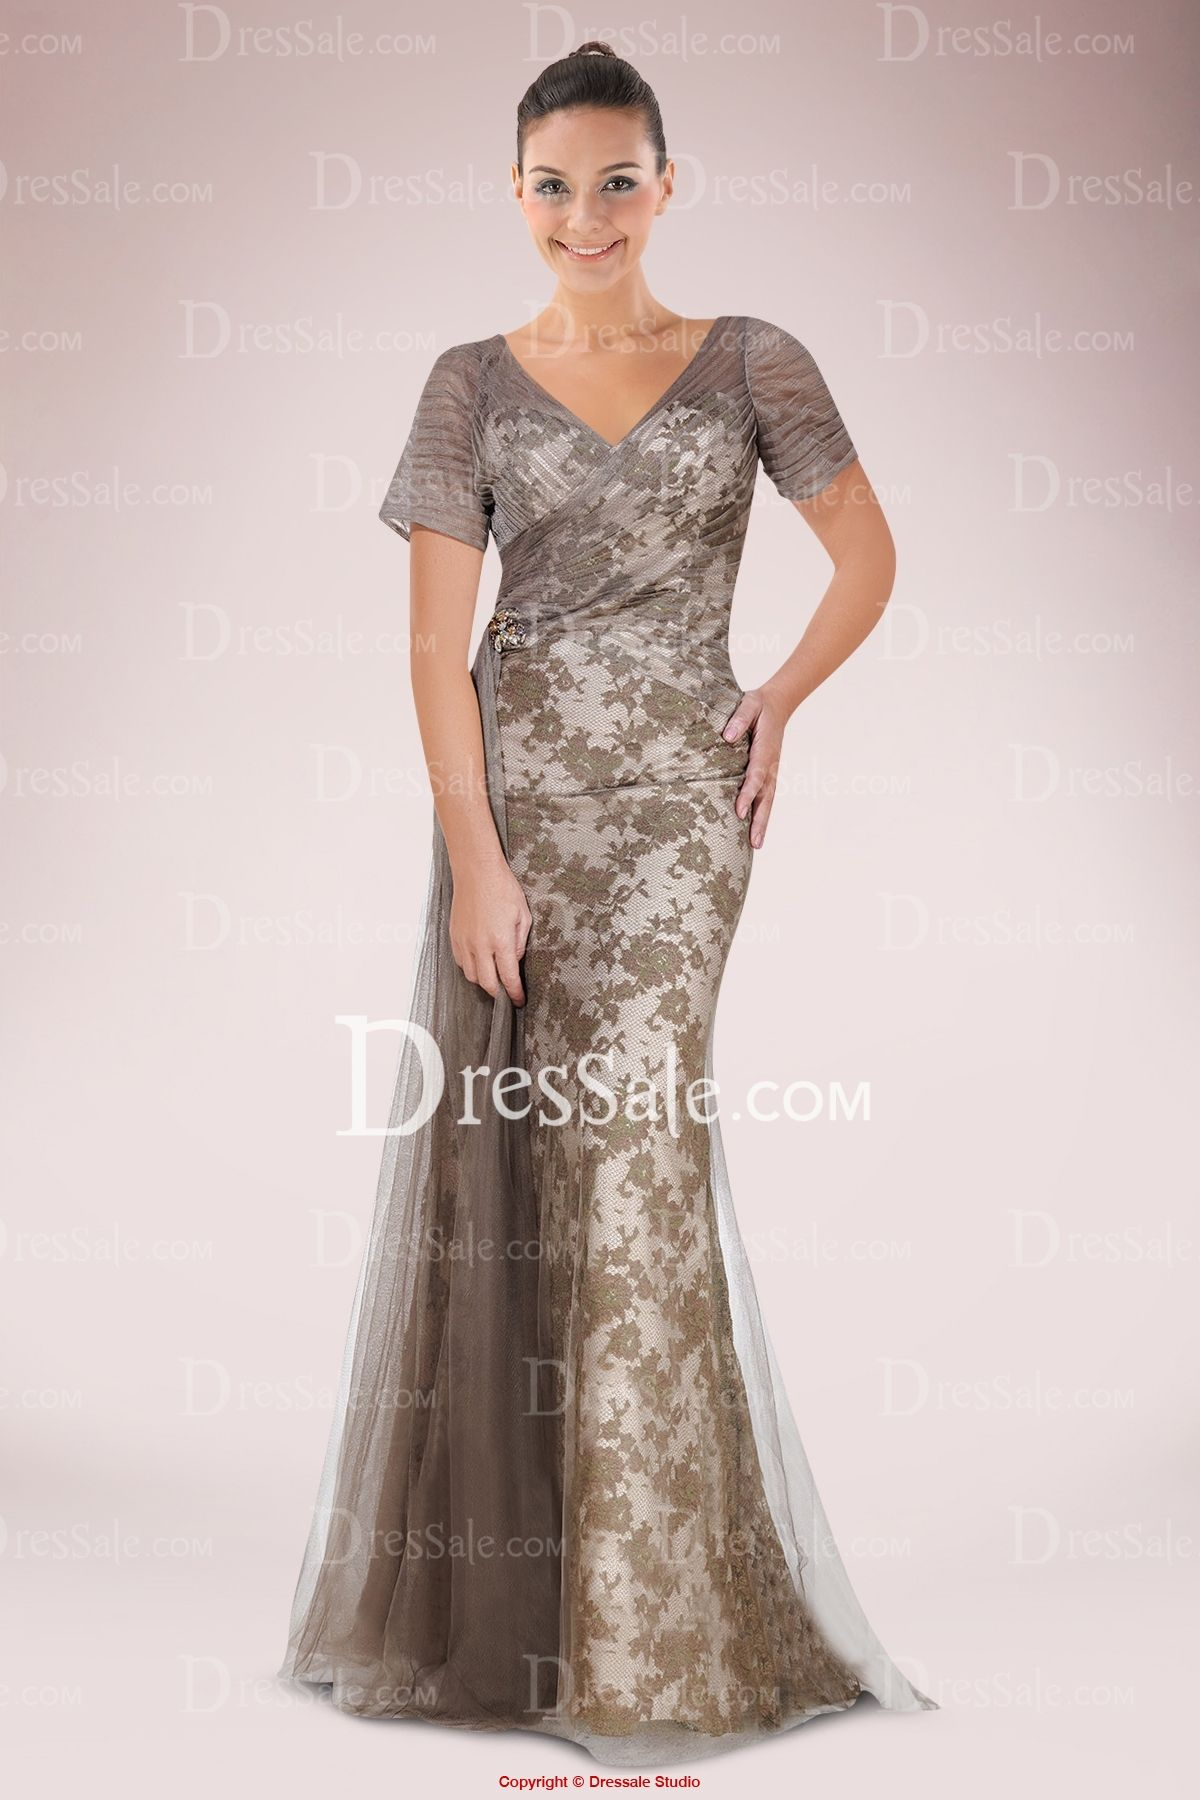 66946f61de3 Delicate Sweetheart Sheath Mother of Bride Dress Featuring Lace Applique  and Pleated Tulle Cover